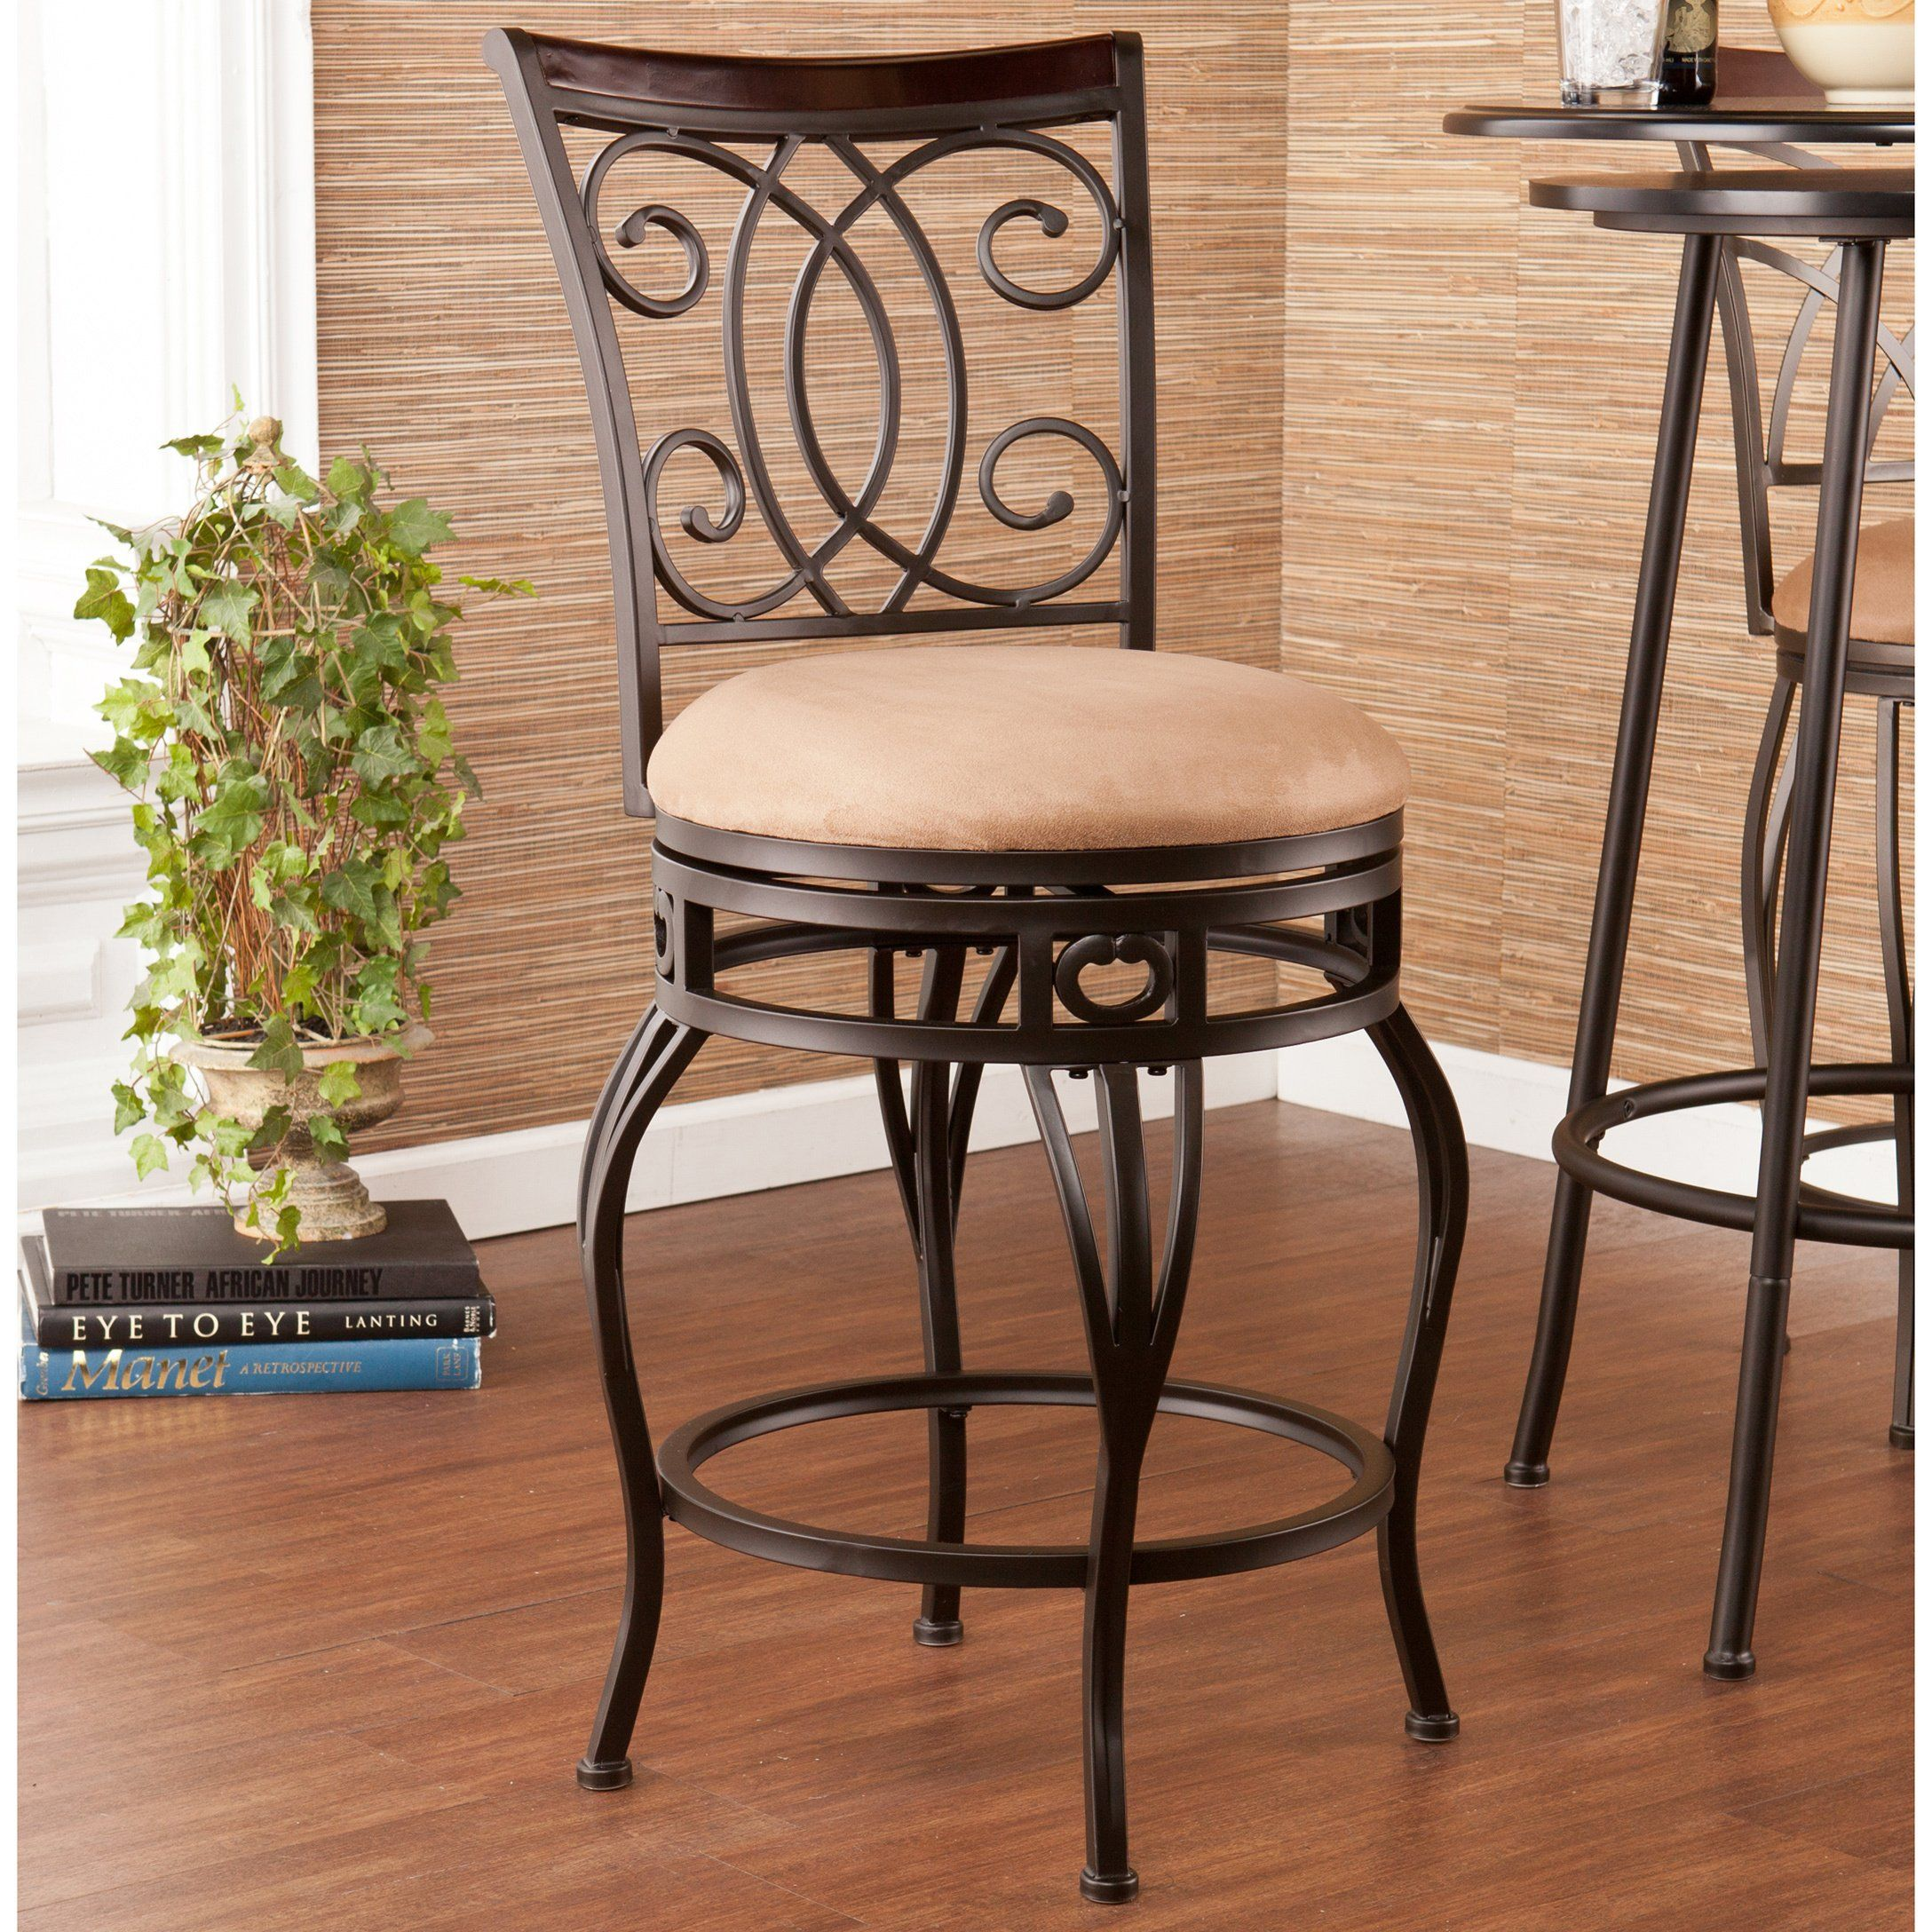 Swell Copper Grove Nepeta Swivel Champagne Counter Stool Os5611 Unemploymentrelief Wooden Chair Designs For Living Room Unemploymentrelieforg